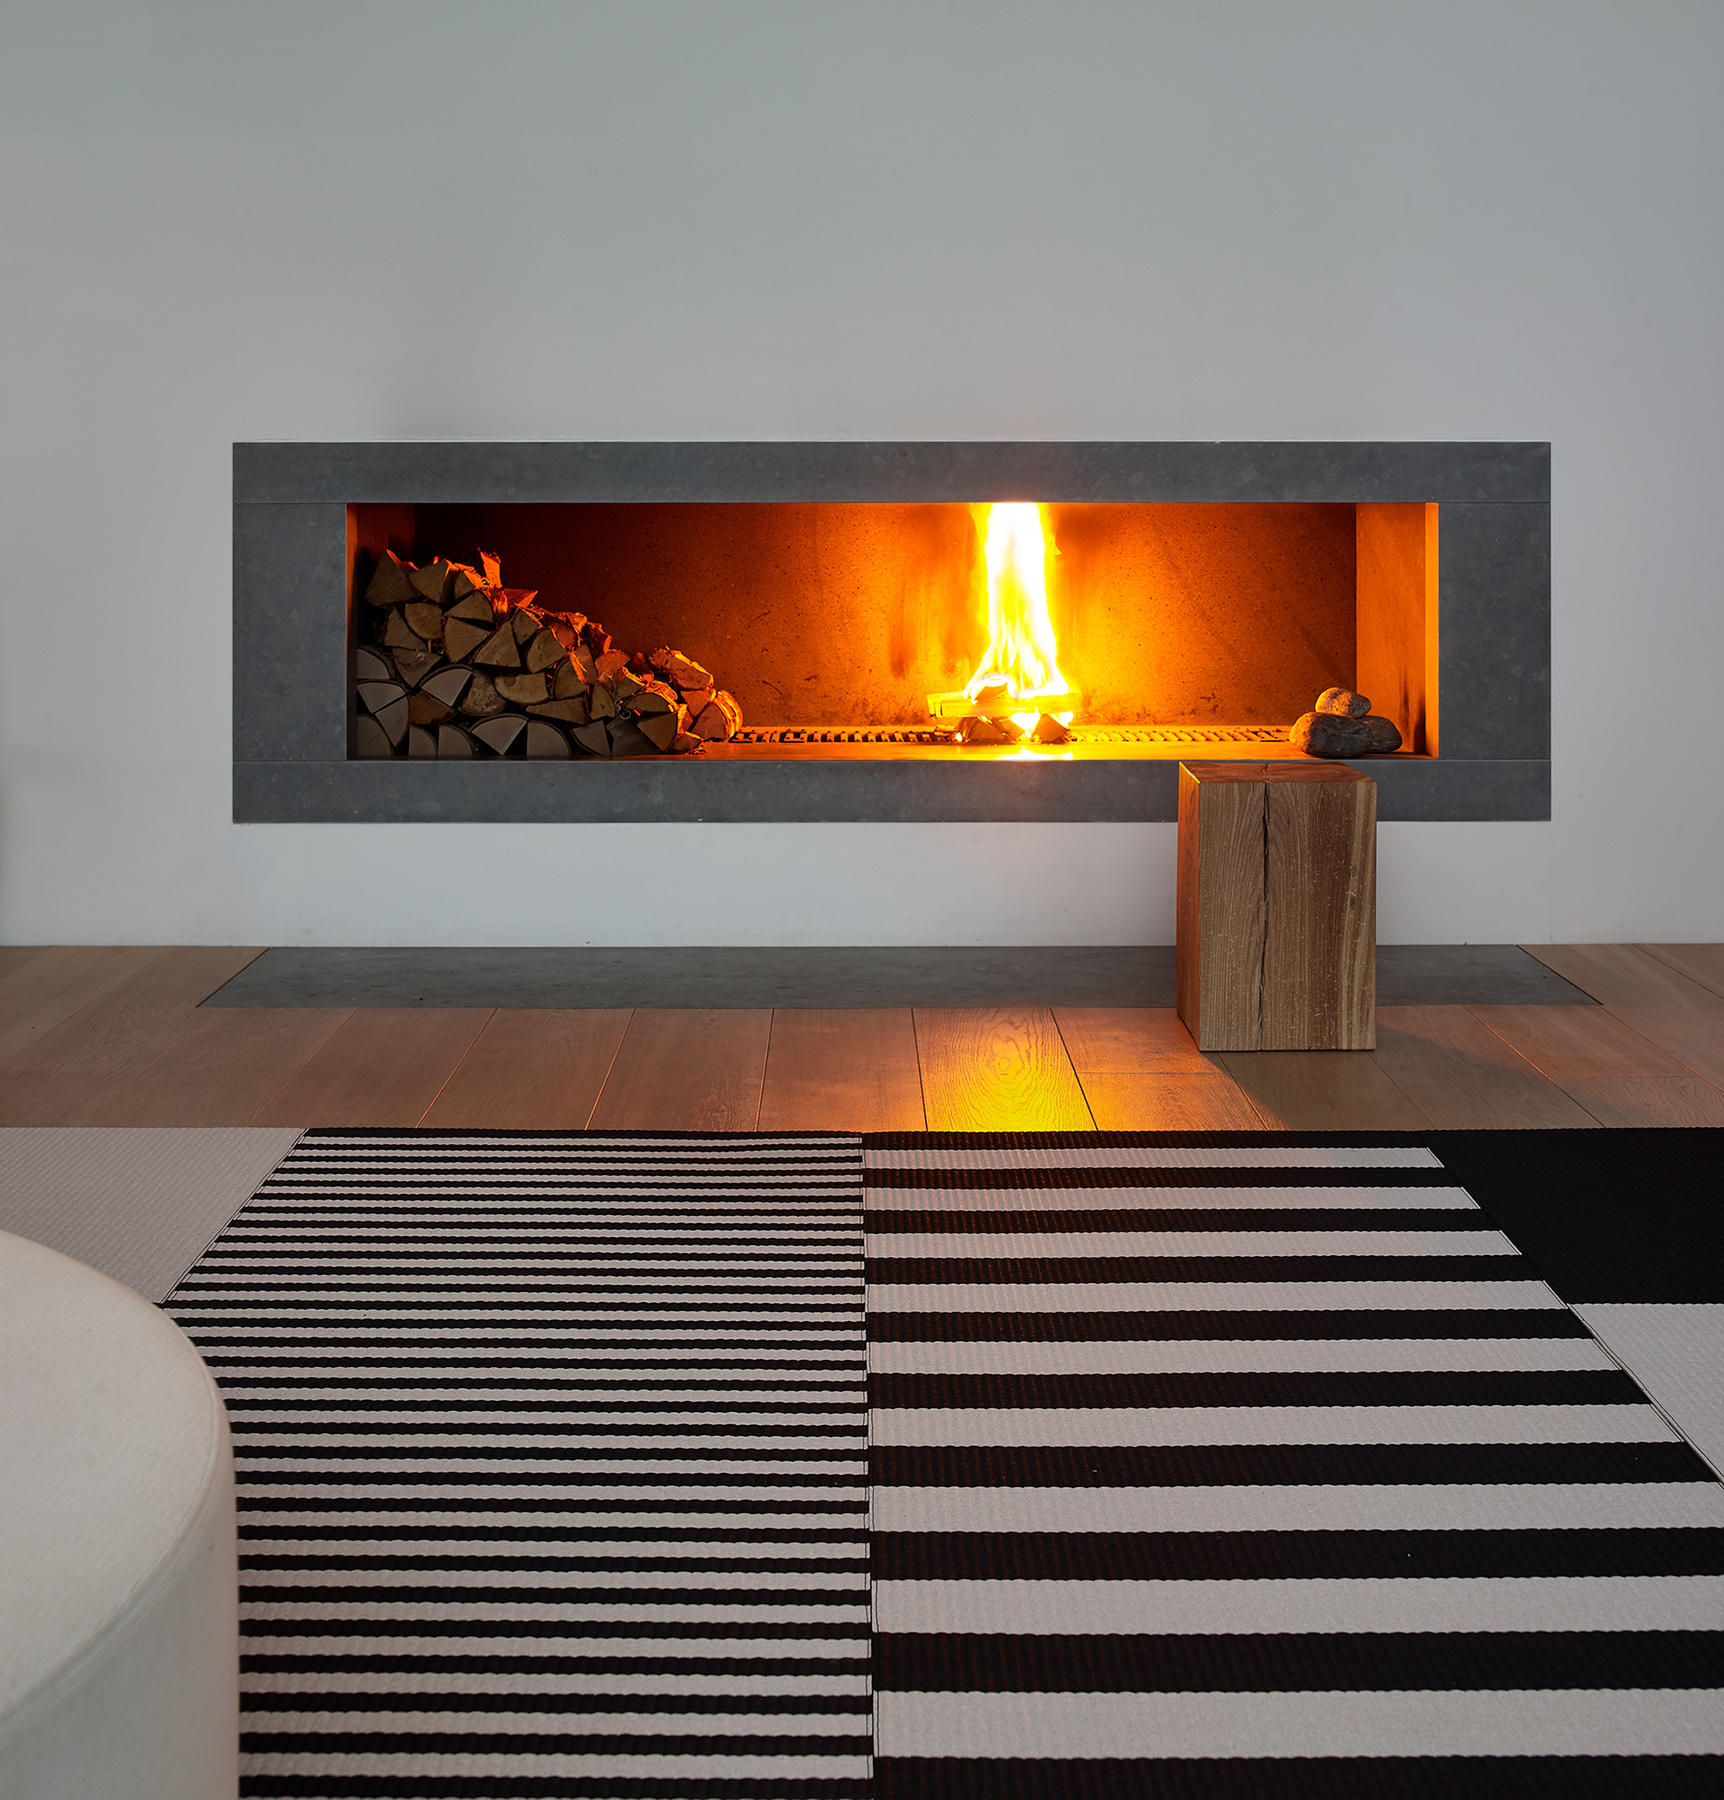 Squareplay  paper yarn carpets together with  Big Stripe  and Stripe carpets